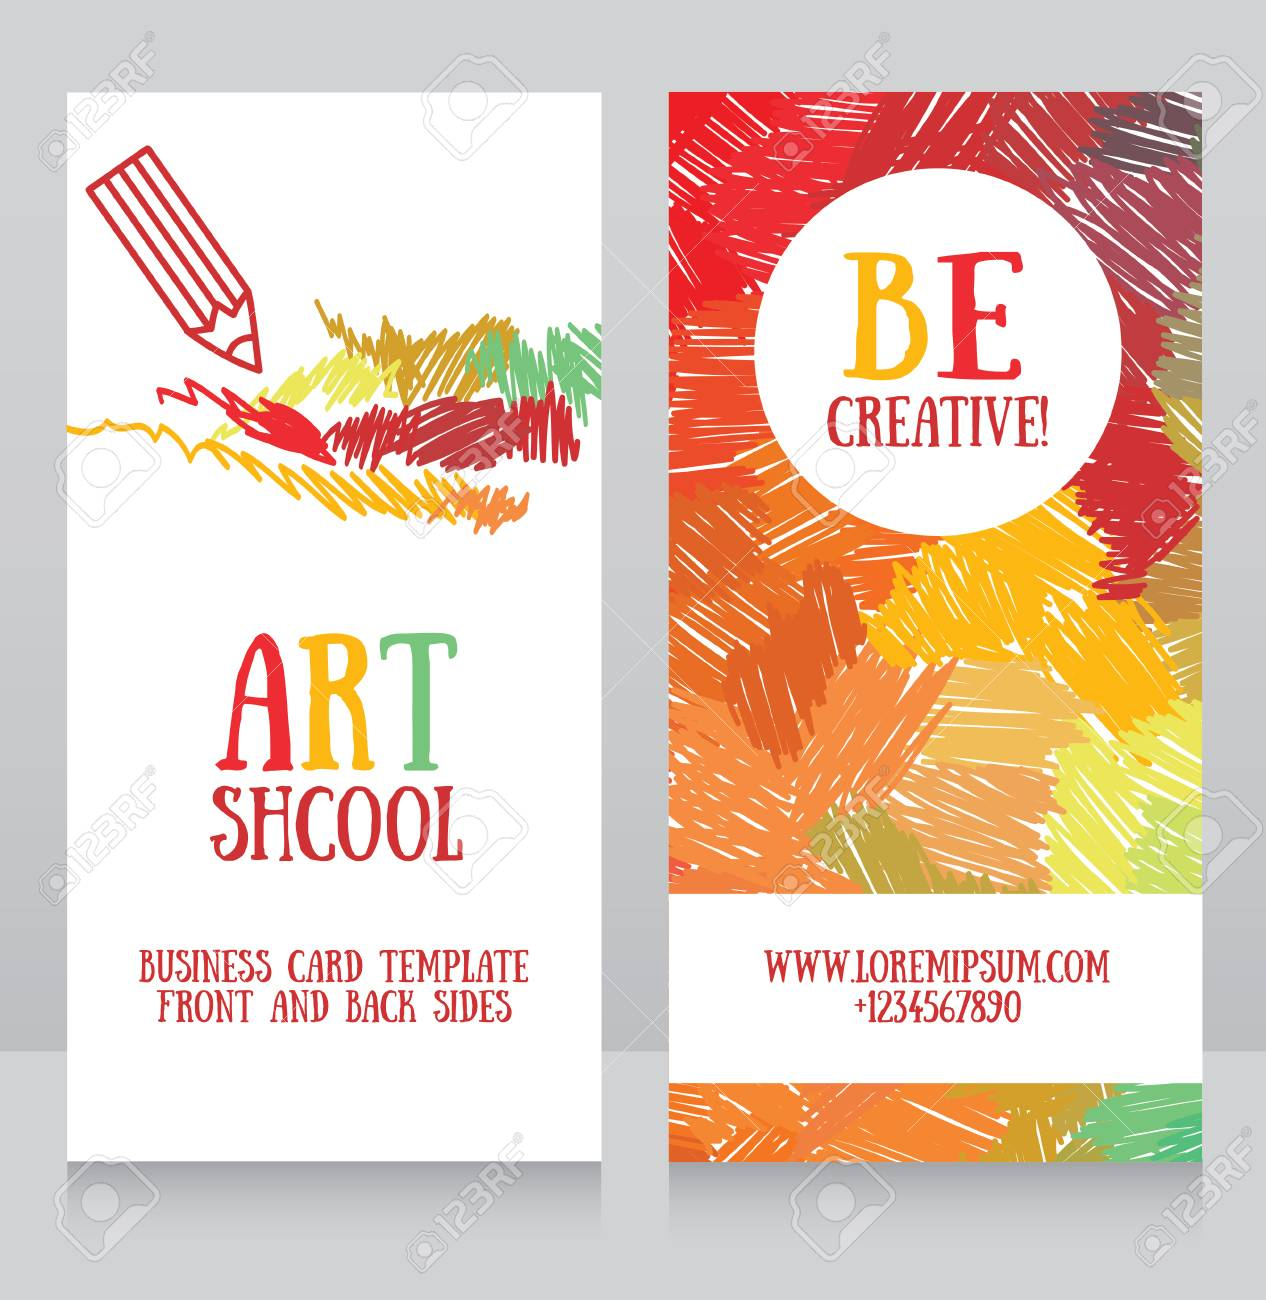 Business Cards Template For Art School Can Be Used For Art Therapy